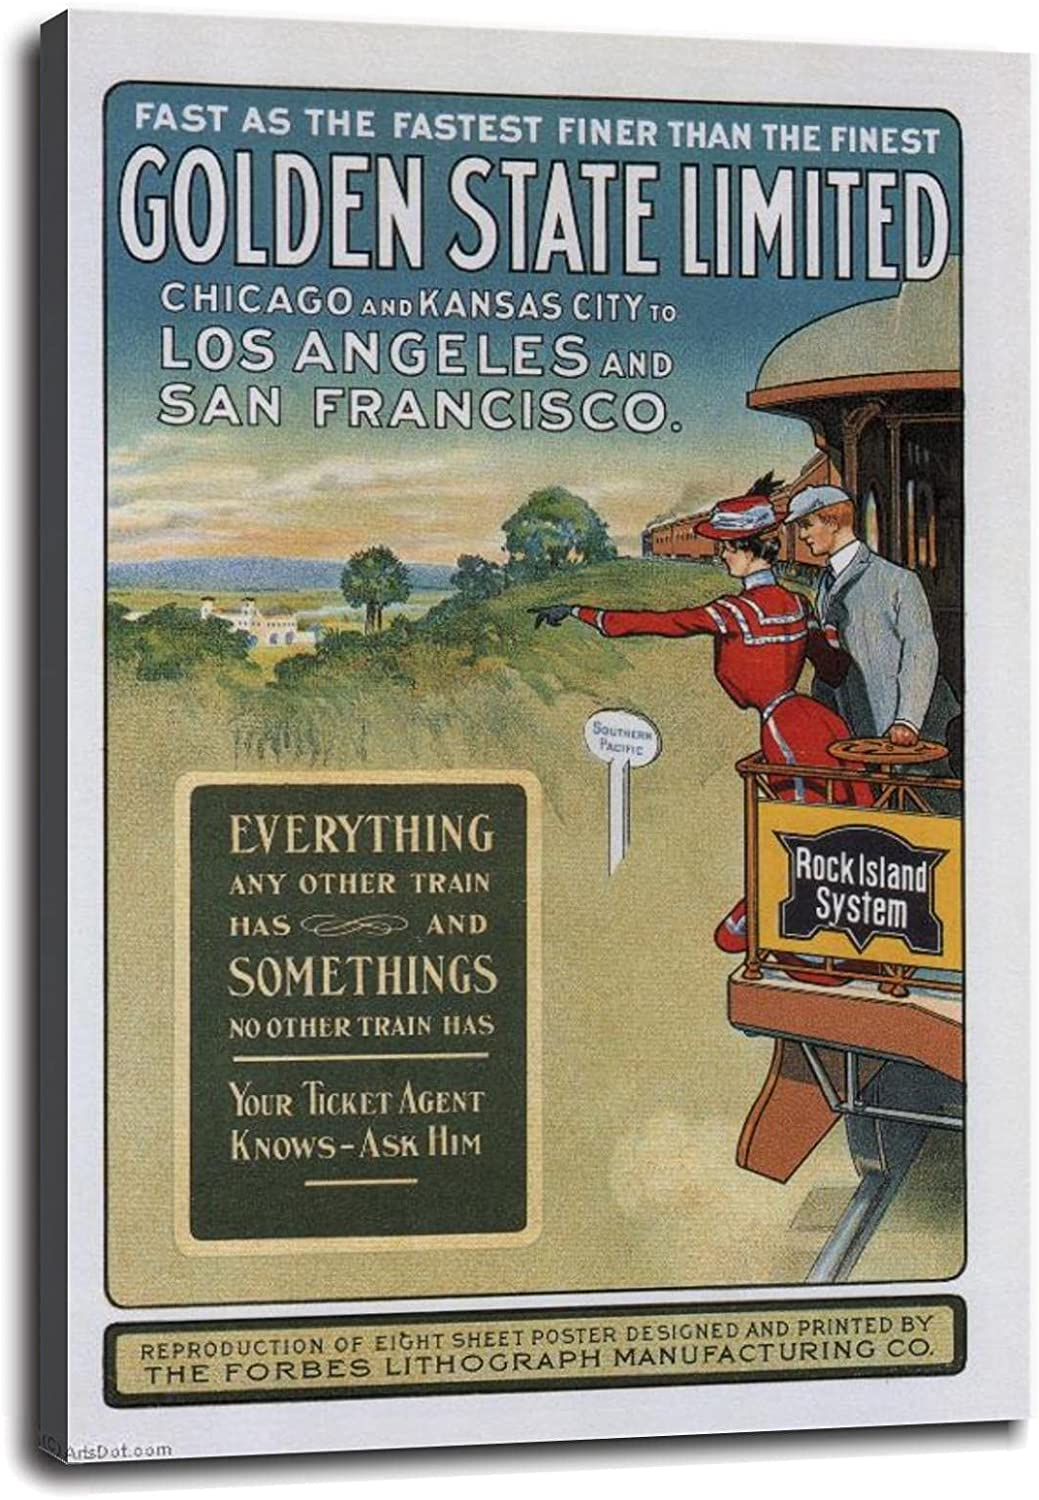 GOLDEN STATE LIMITED Vintage Train STATES Poster Fashionable UNITED Travel Sales for sale 1